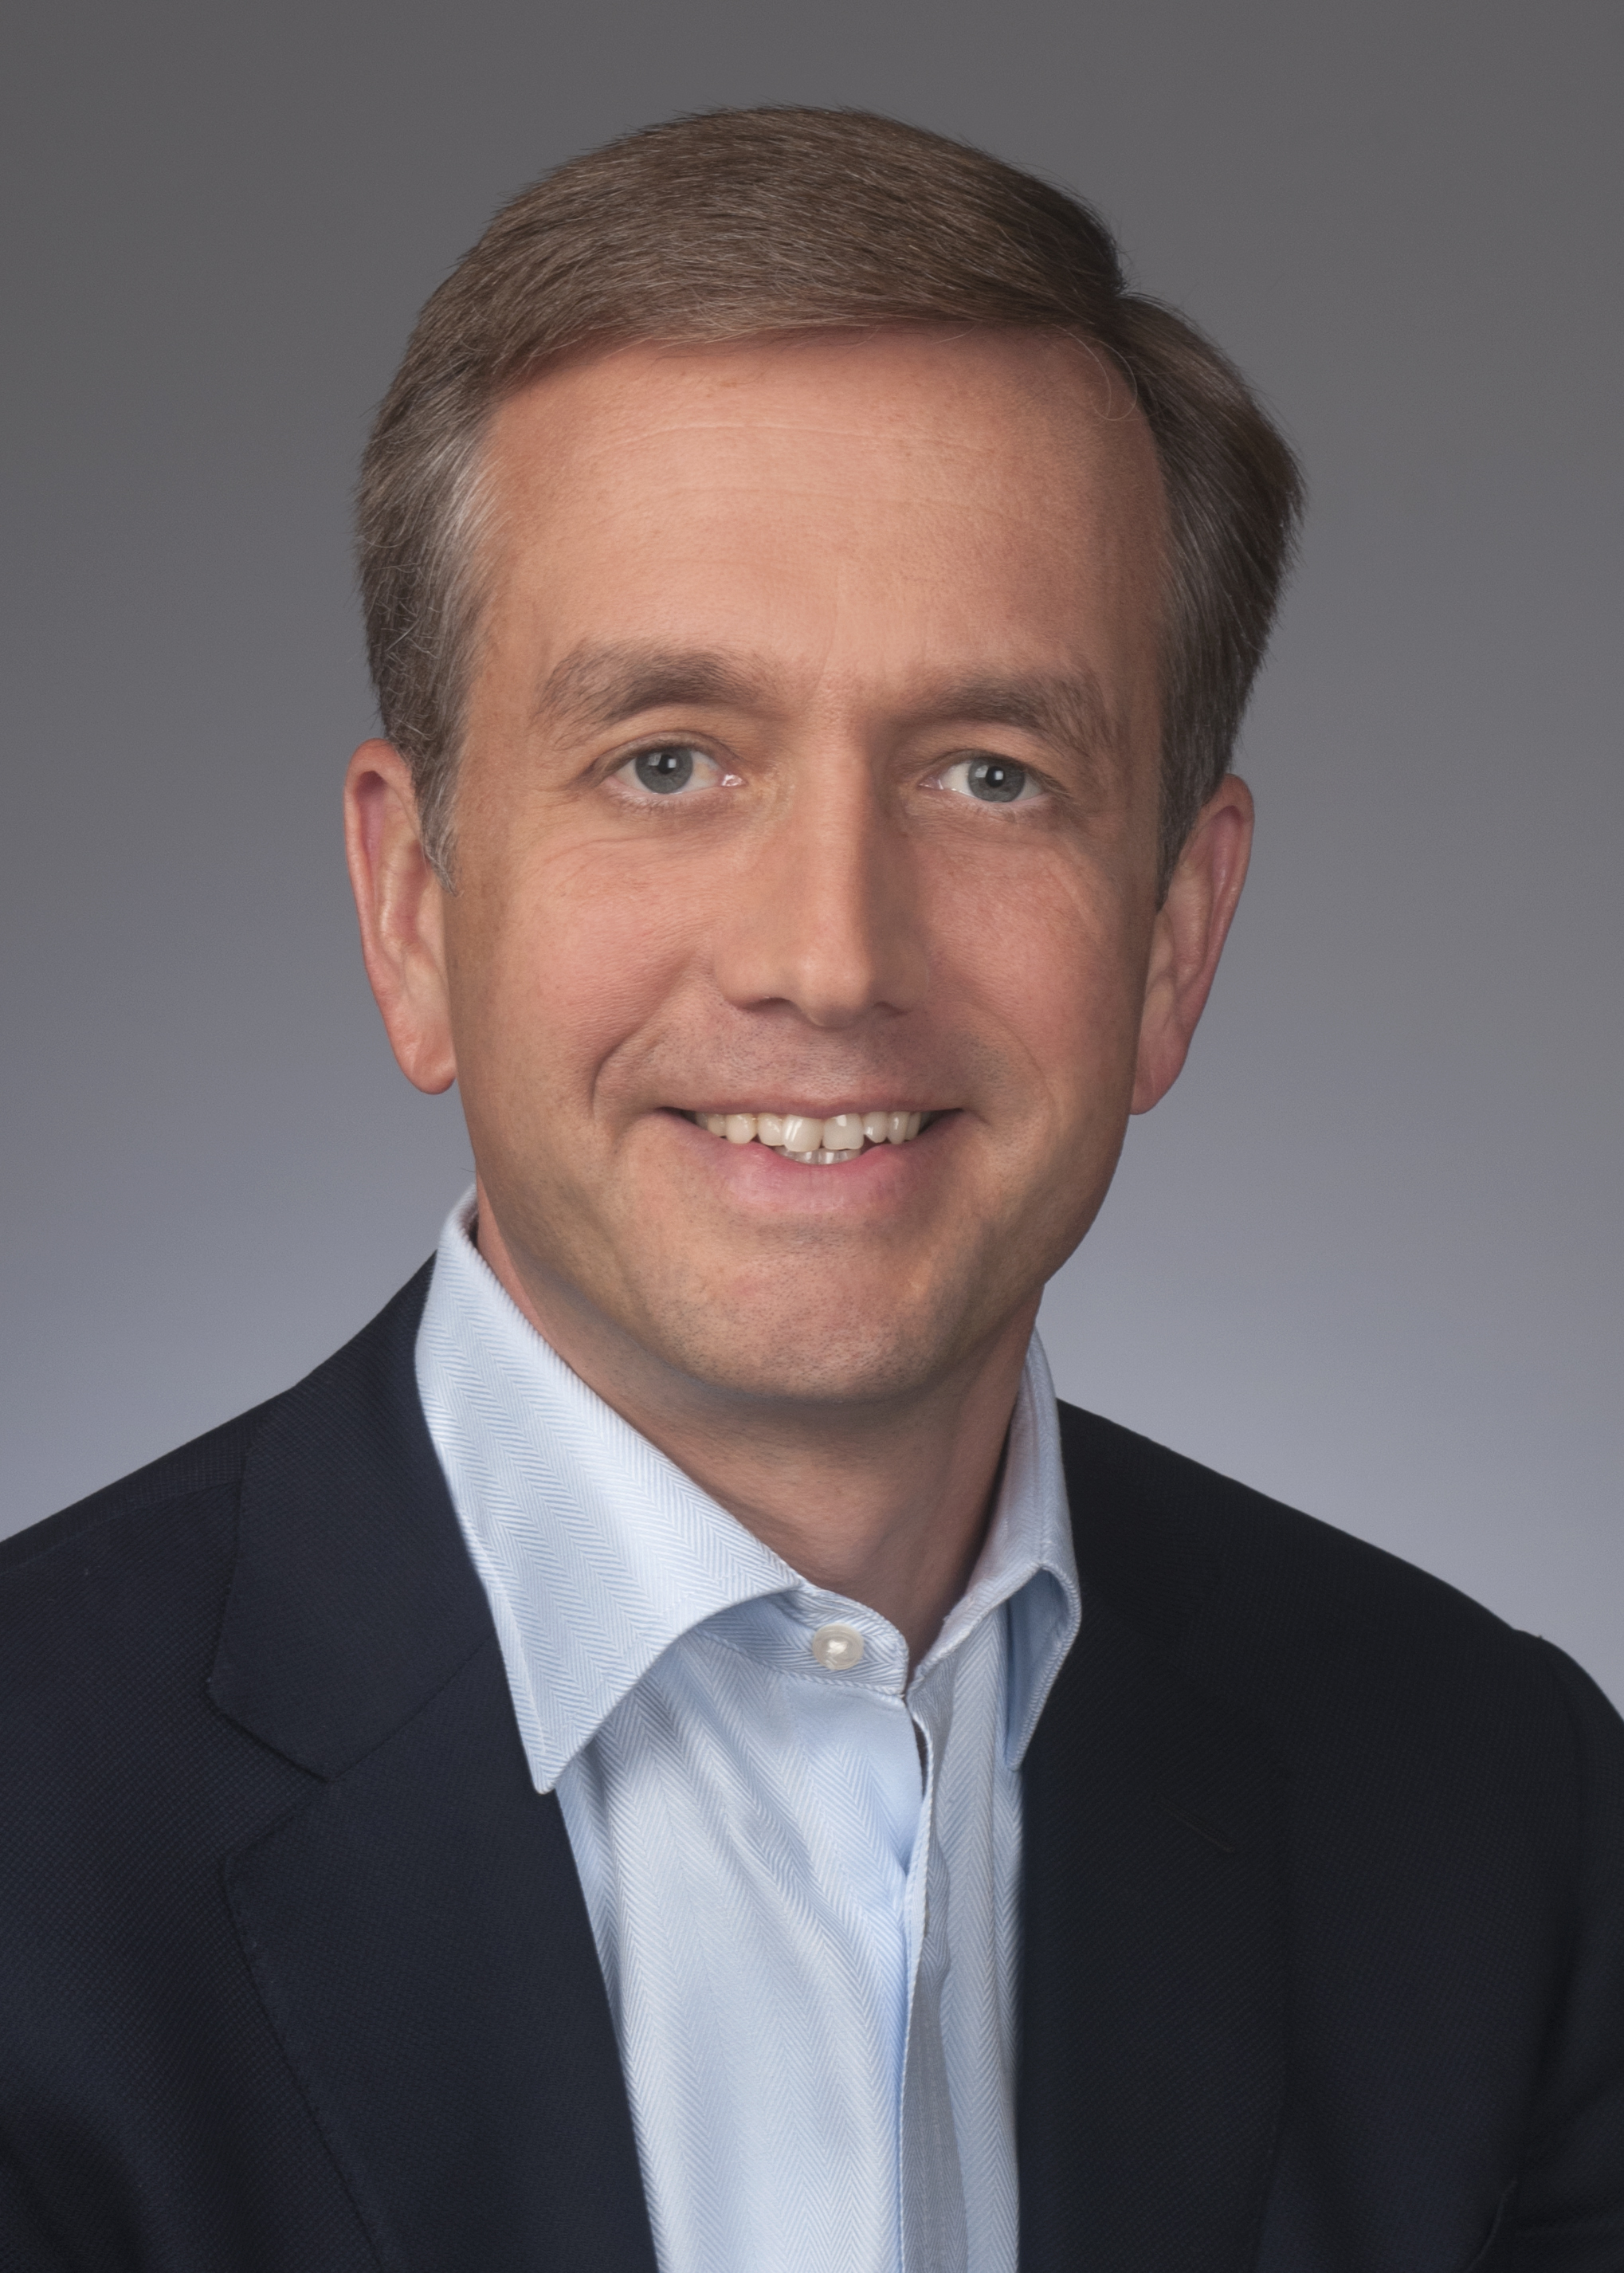 Tim Murphy, Chief Product Officer, MasterCard appointed to General Counsel and Chief Franchise Officer.